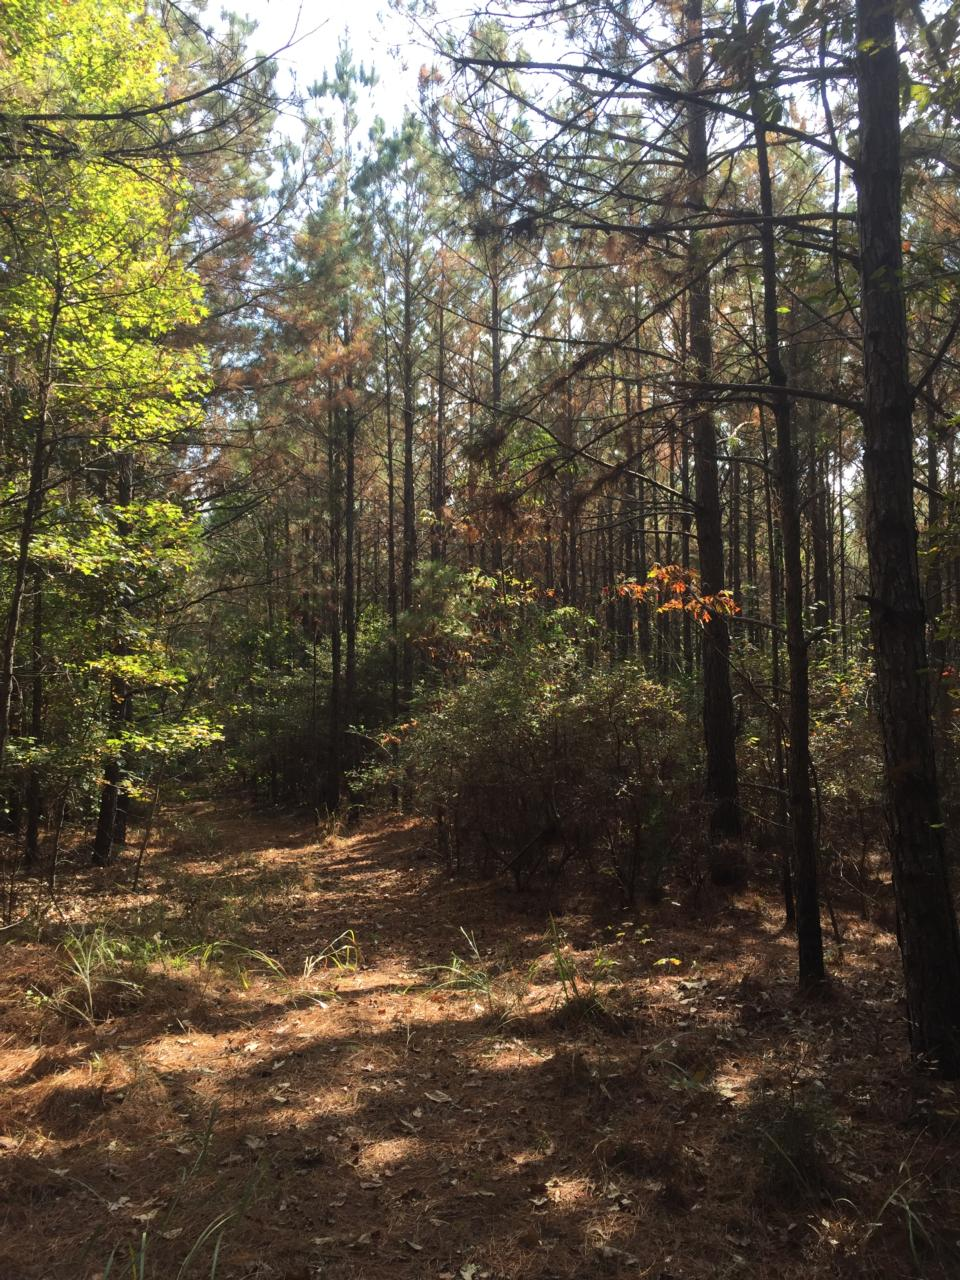 Pine Prairie Louisiana Timberland for Sale $2000 Per Acre - Evangeline Parrish